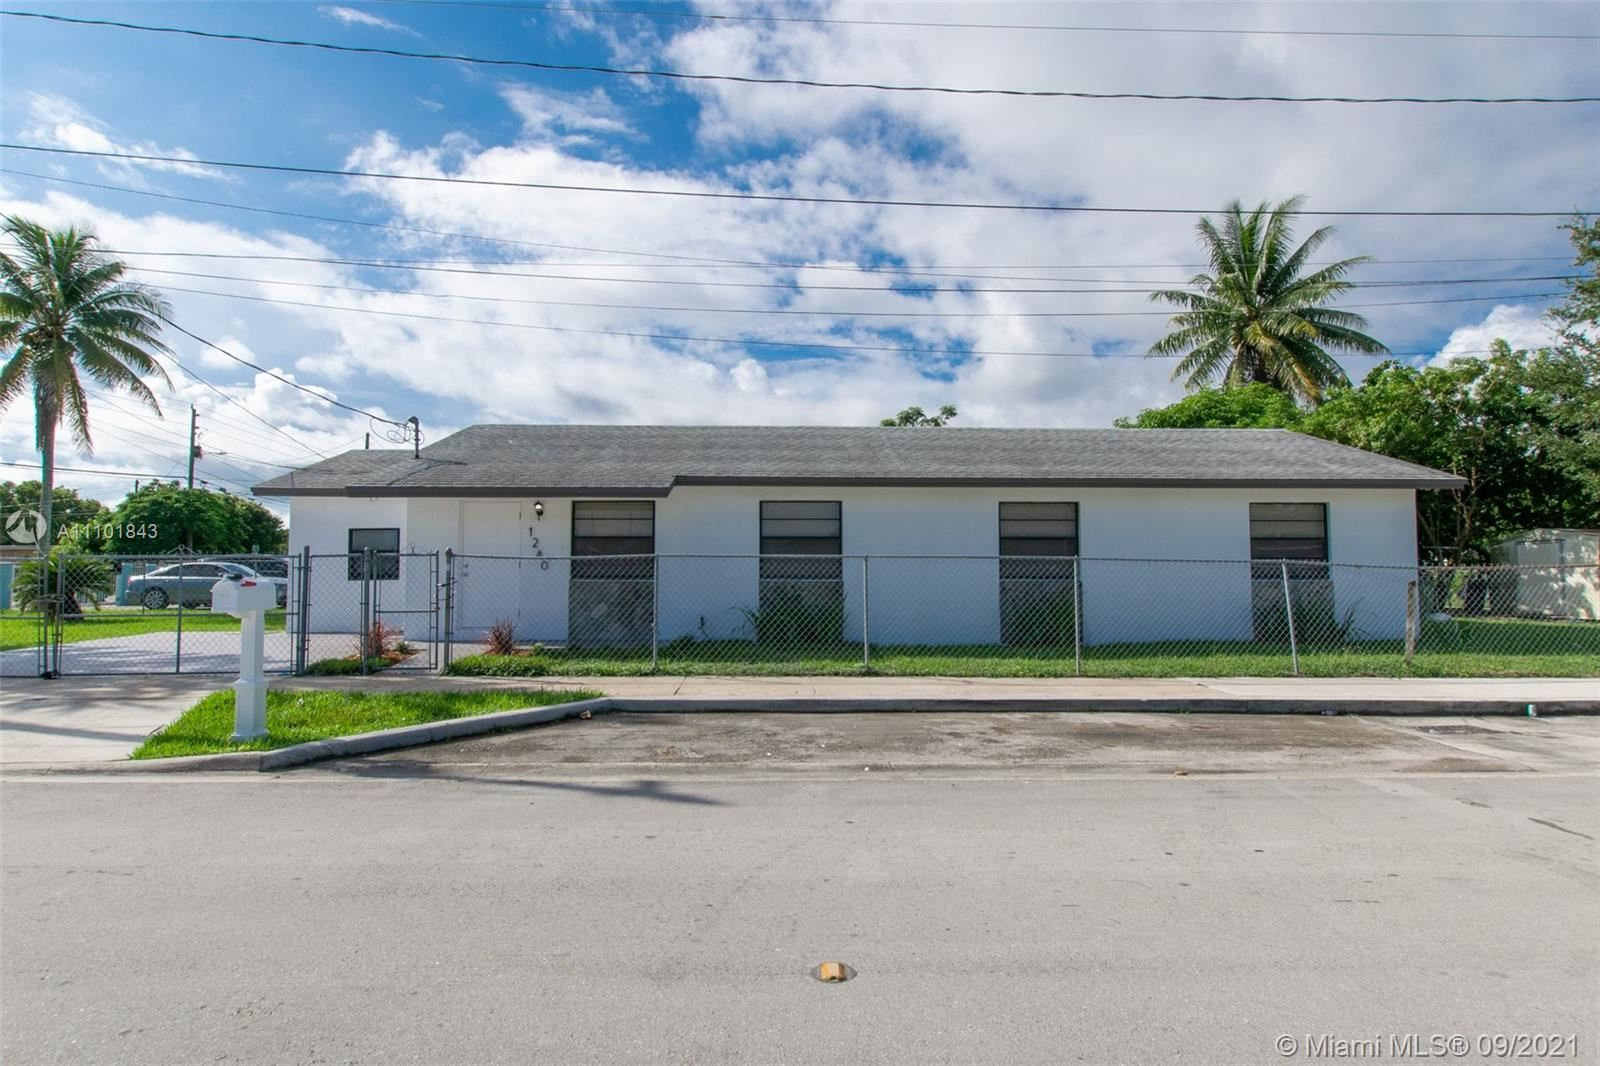 1240 NW 6th Ave, Florida City, FL 33034 - #: A11101843